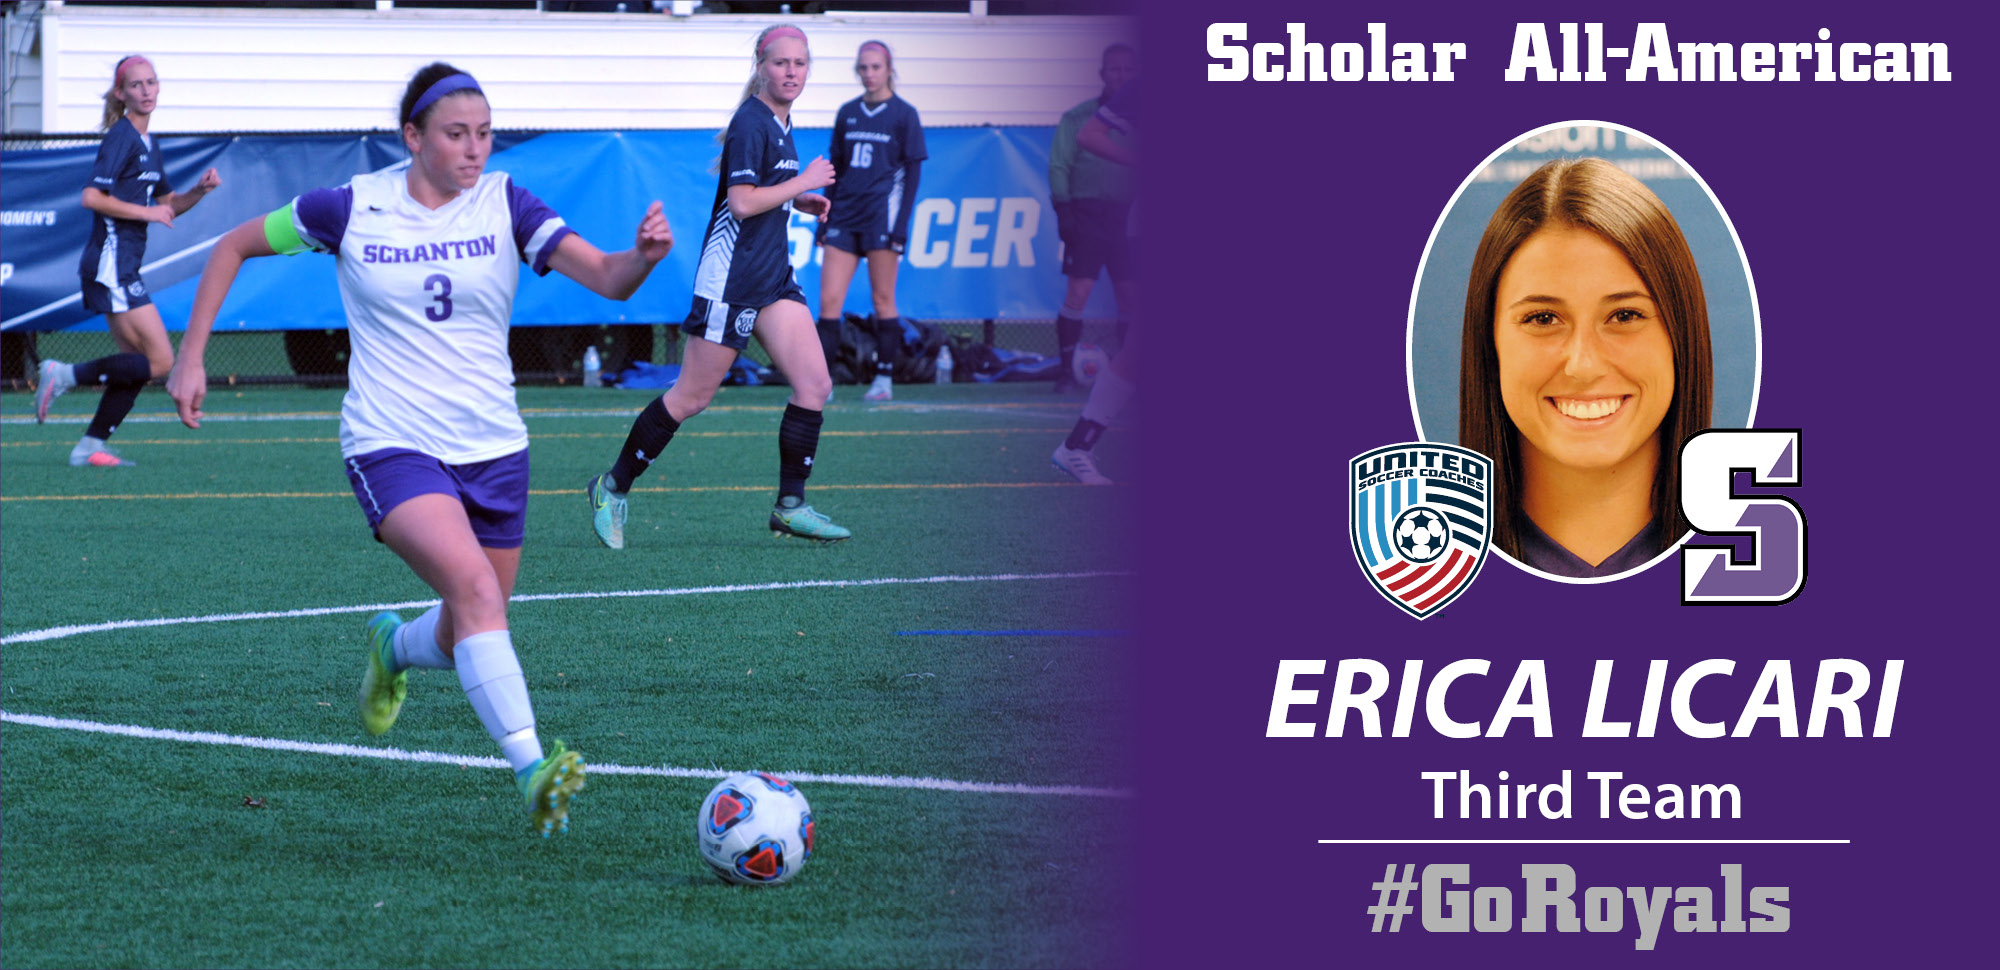 Licari Named Third-Team Scholar All-American By United Soccer Coaches